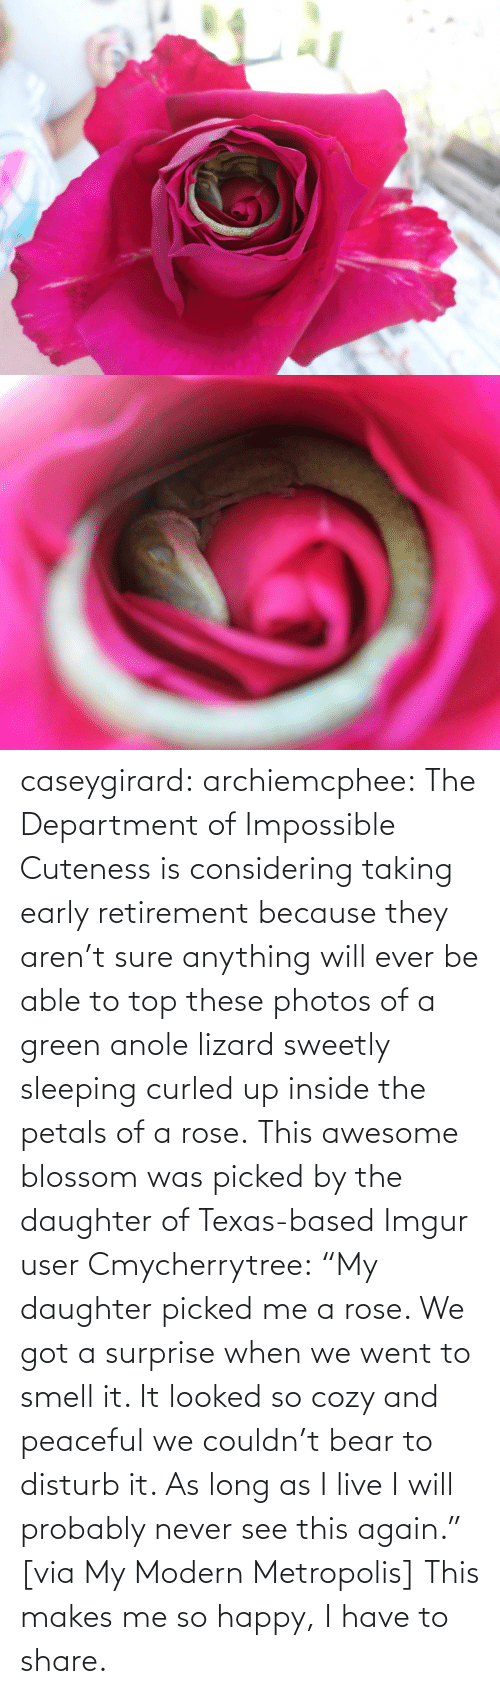 "surprise: caseygirard:  archiemcphee:   The Department of Impossible Cuteness is considering taking early retirement because they aren't sure anything will ever be able to top these photos of a green anole lizard sweetly sleeping curled up inside the petals of a rose. This awesome blossom was picked by the daughter of Texas-based Imgur user Cmycherrytree: ""My daughter picked me a rose. We got a surprise when we went to smell it. It looked so cozy and peaceful we couldn't bear to disturb it. As long as I live I will probably never see this again."" [via My Modern Metropolis]   This makes me so happy, I have to share."